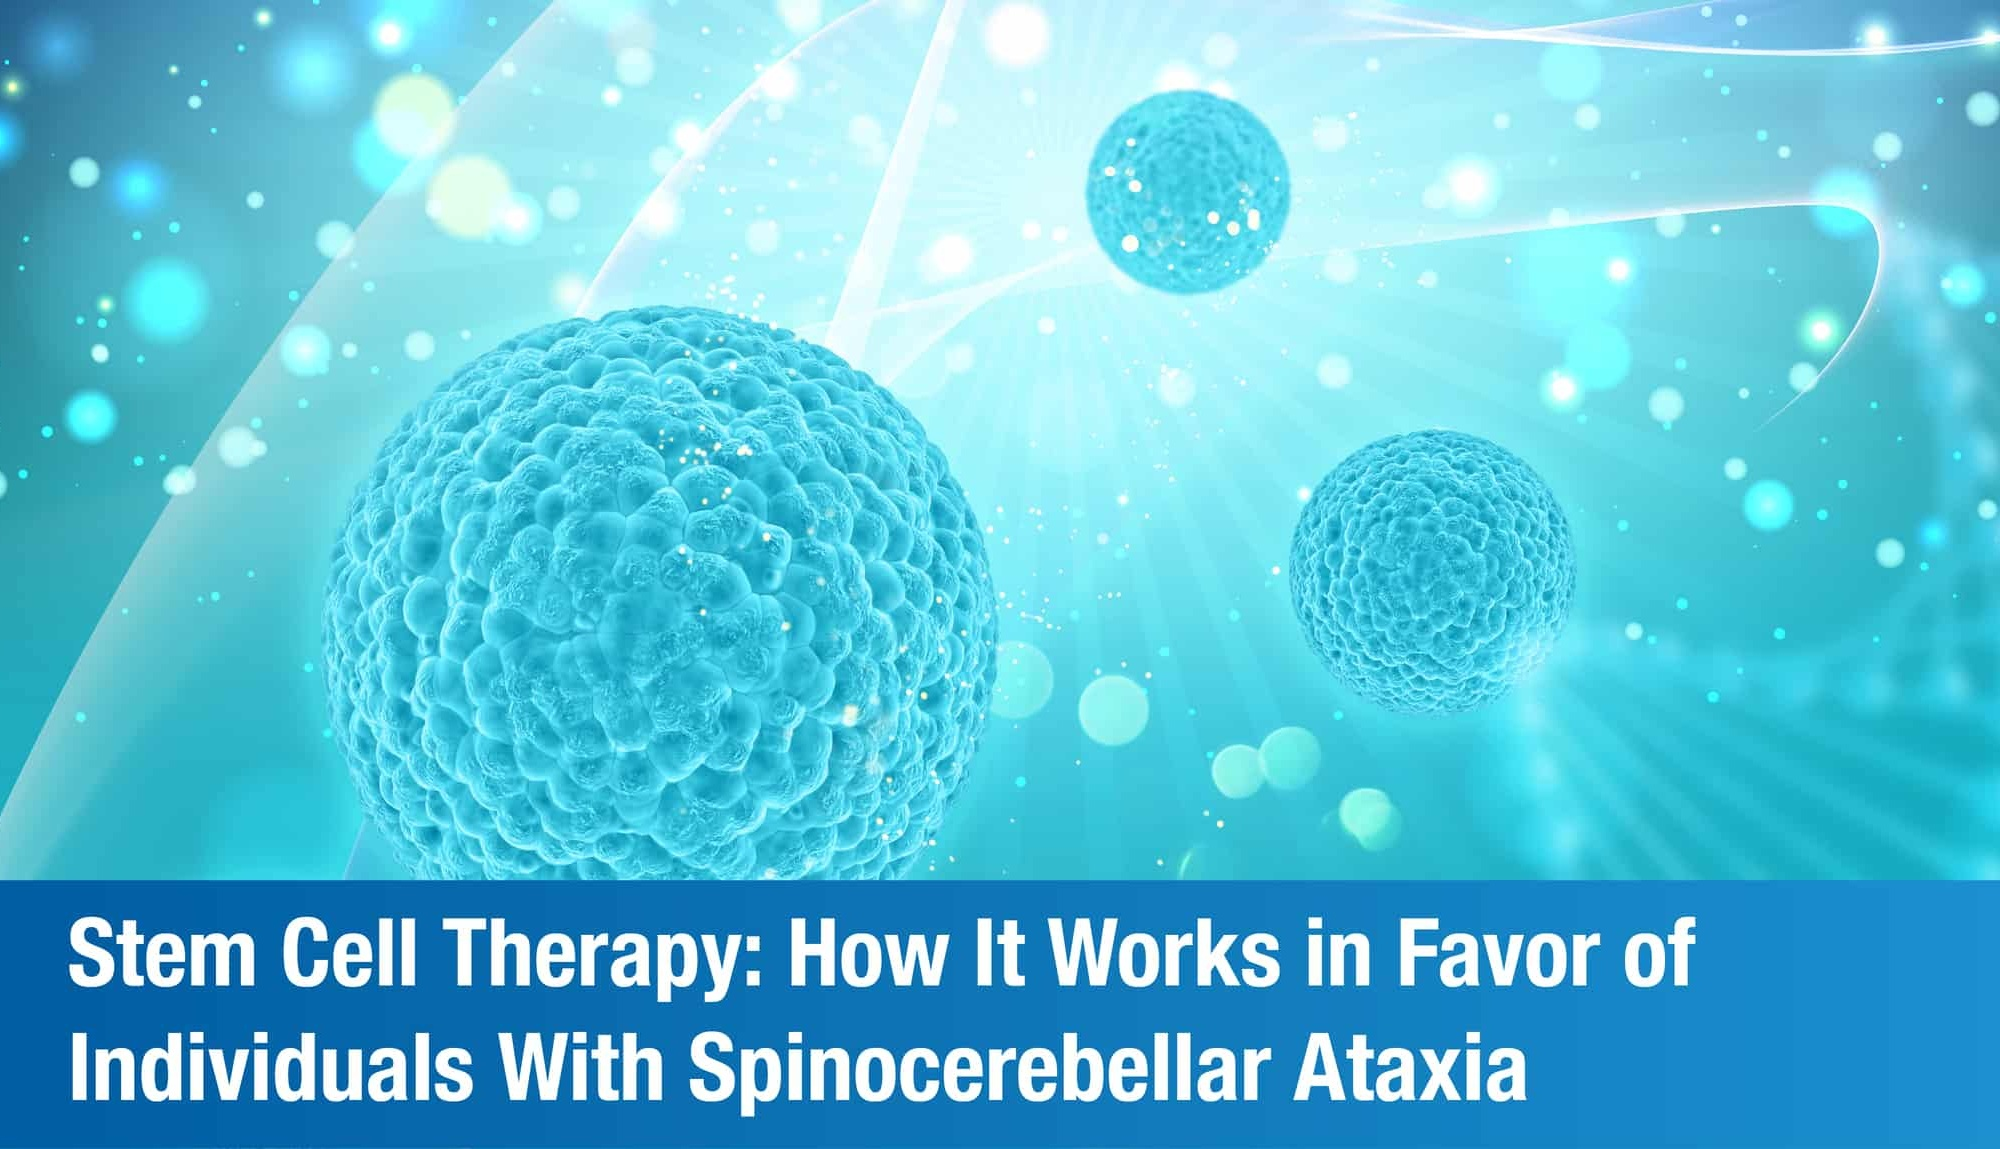 Stem Cell Therapy: How It Works in Favor of Individuals With Spinocerebellar Ataxia